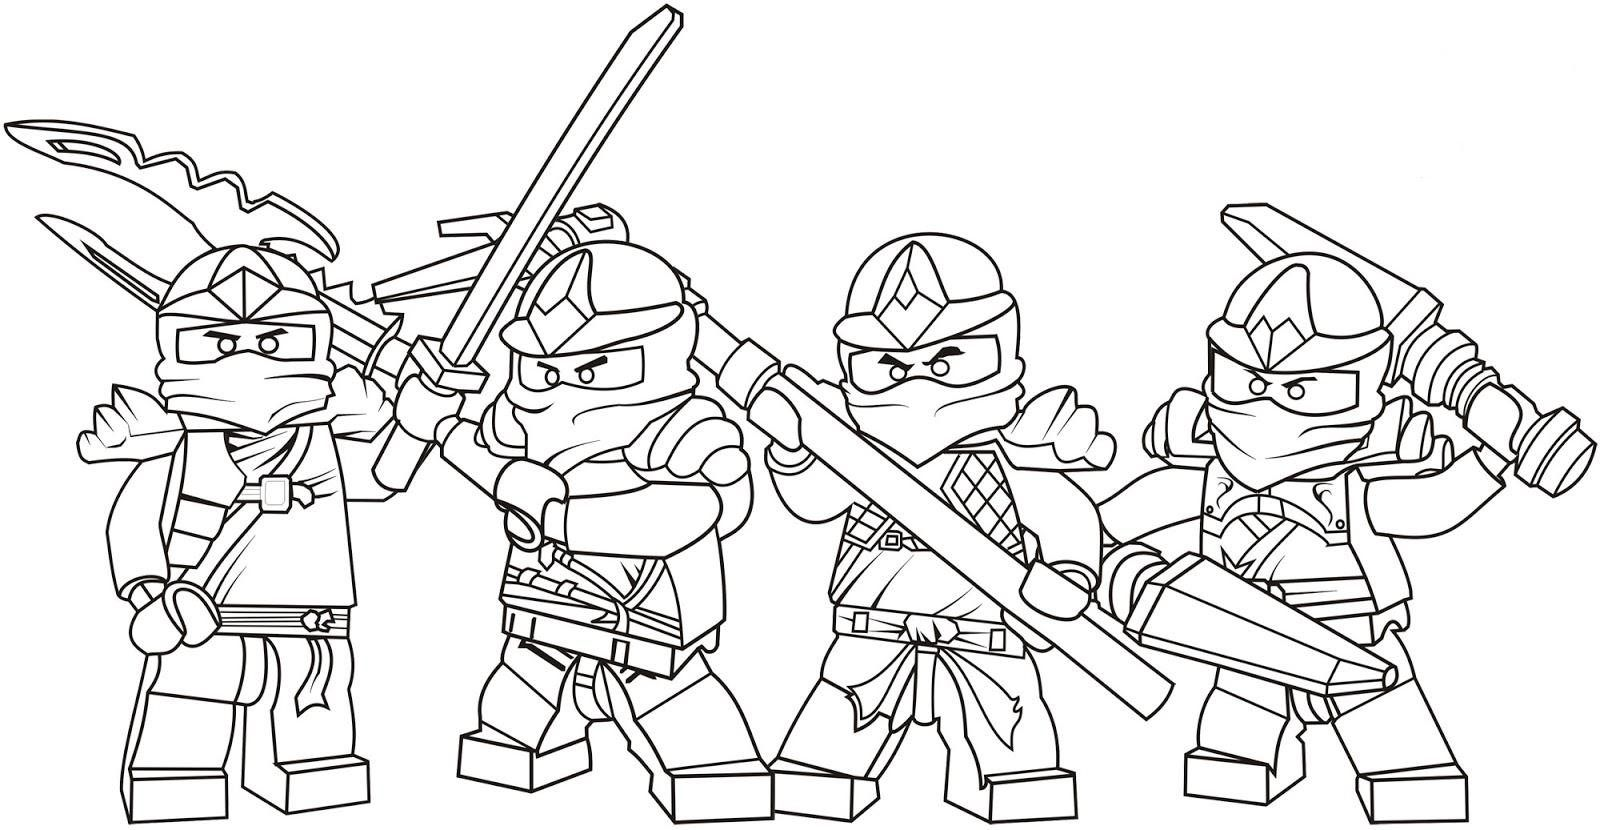 Ausmalbilder Nexo Knights Jestro : Ninjago Coloring Pages Lloyd Zx Best Of Do Wydruku Kolorowanki Lego